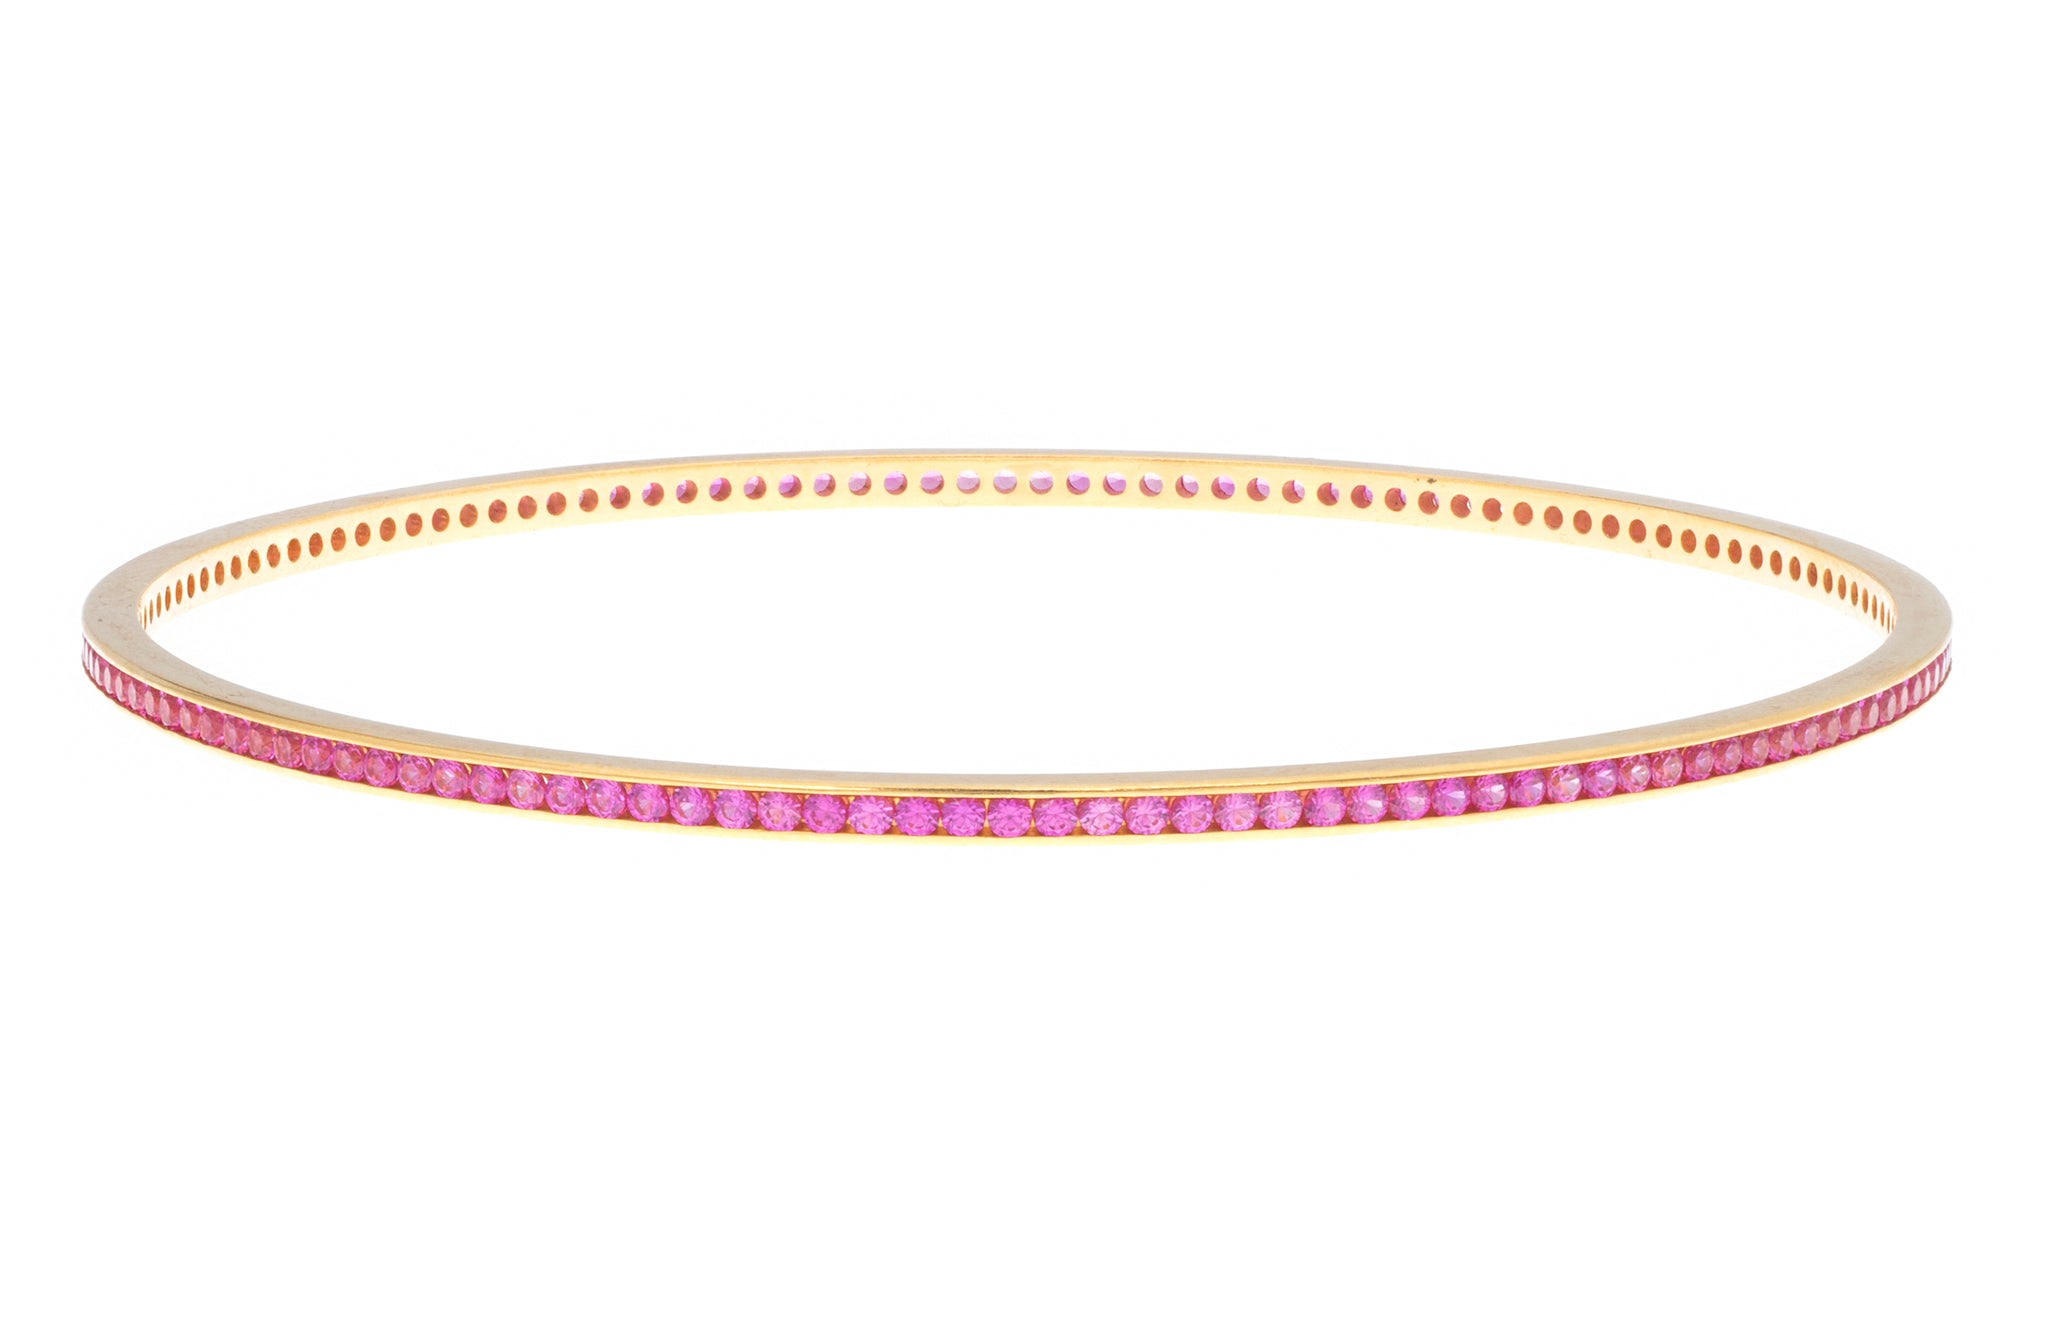 22ct Yellow Gold Bangles set with Pink Stones (B-1526)